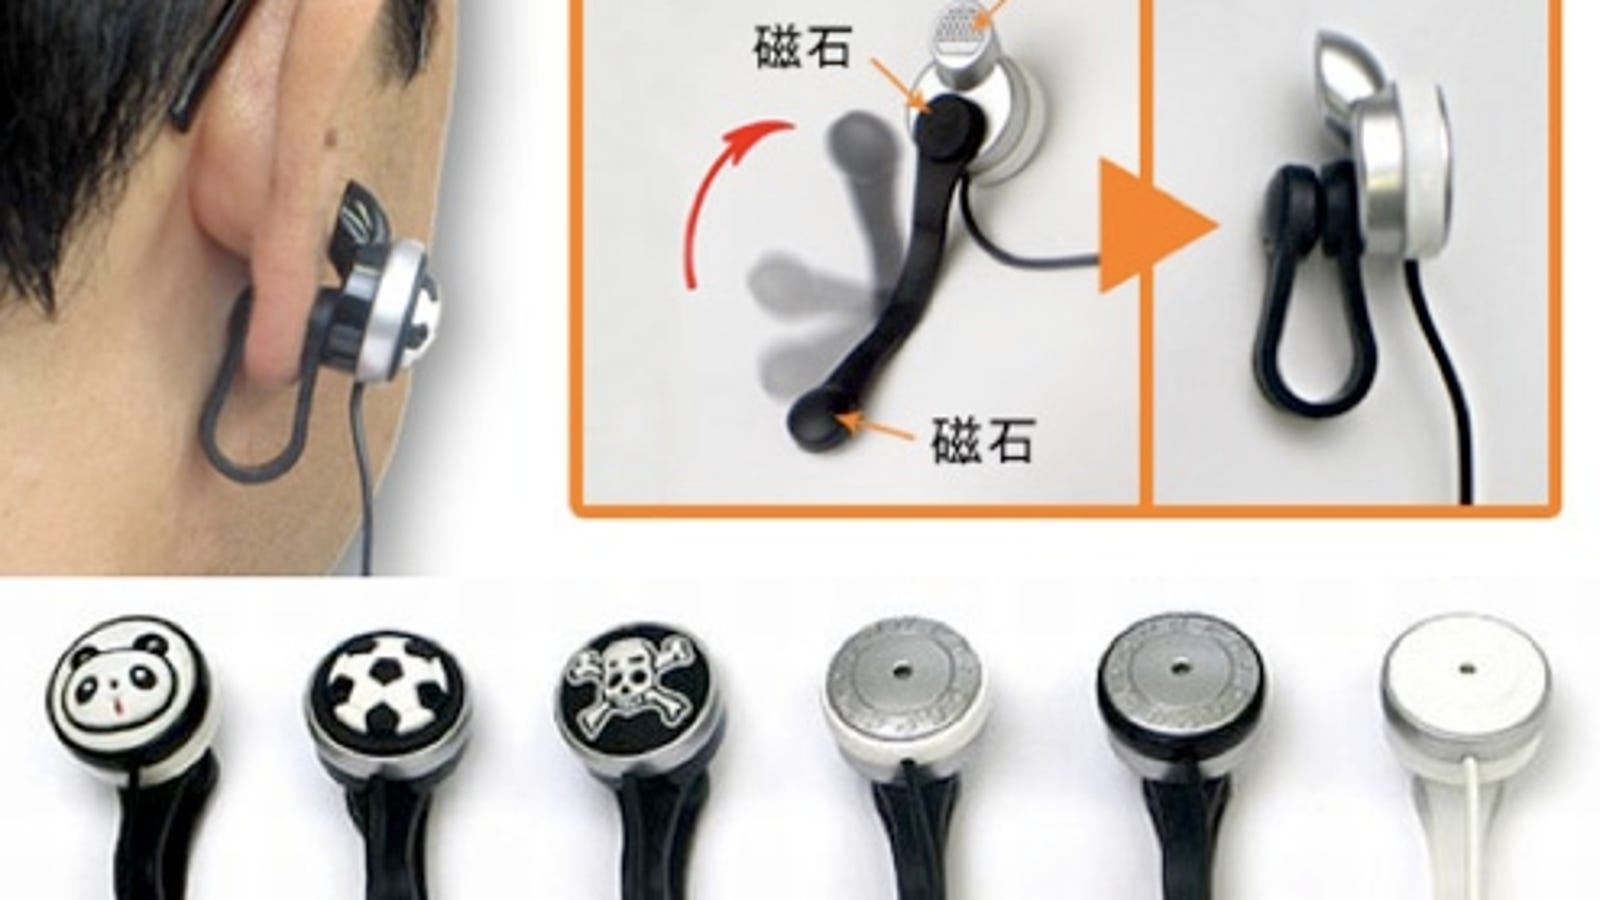 Thanko Magnetic Earring-Clip Earphones Can Make You Look like a Pirate